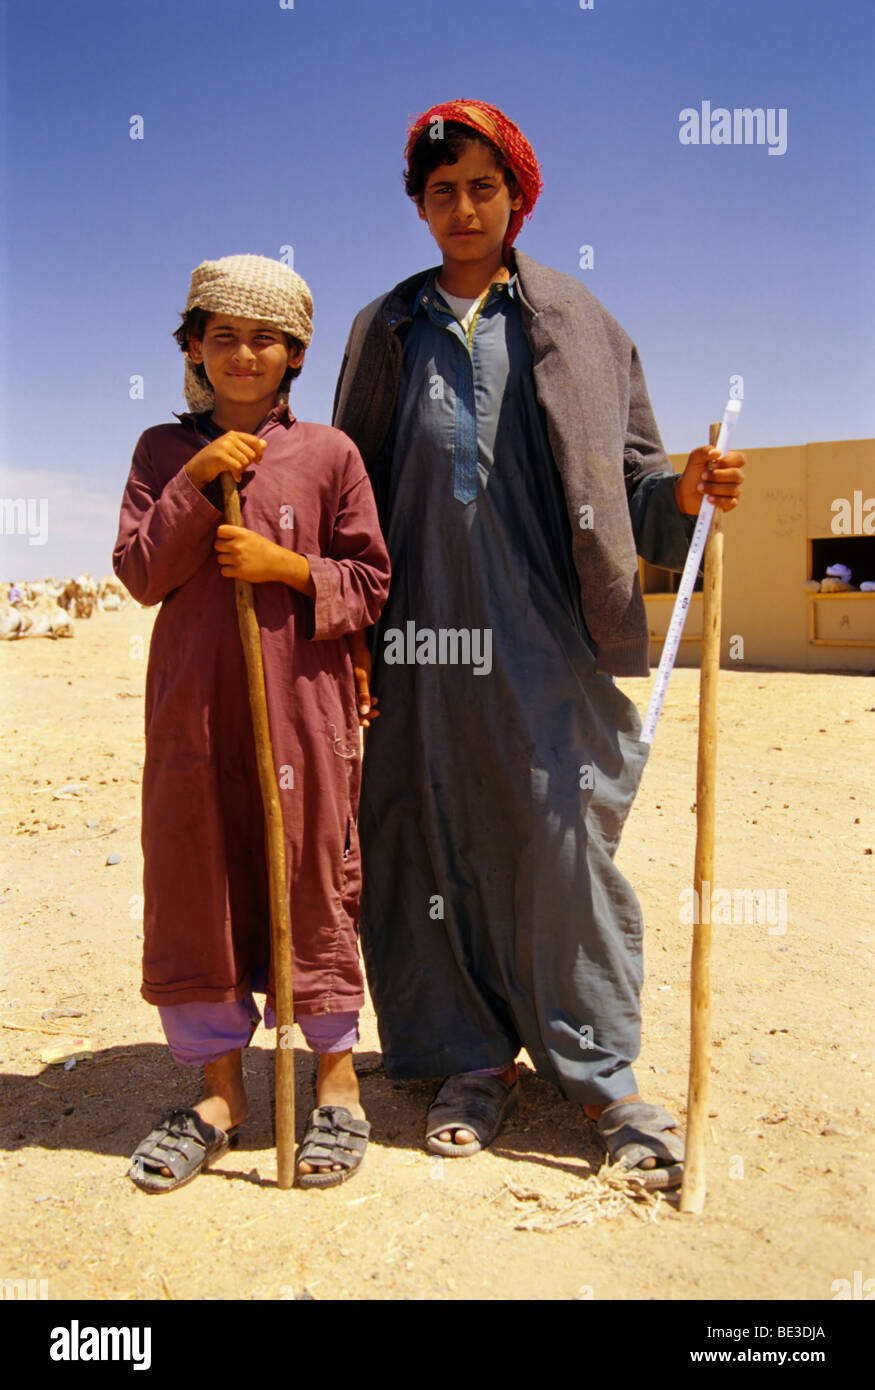 Camel shepherds, Bedouins in traditional dress, Egyptians, portrait, Dschjellahba, Jelleba, clothes, Arabian, Egyptian, Stock Photo